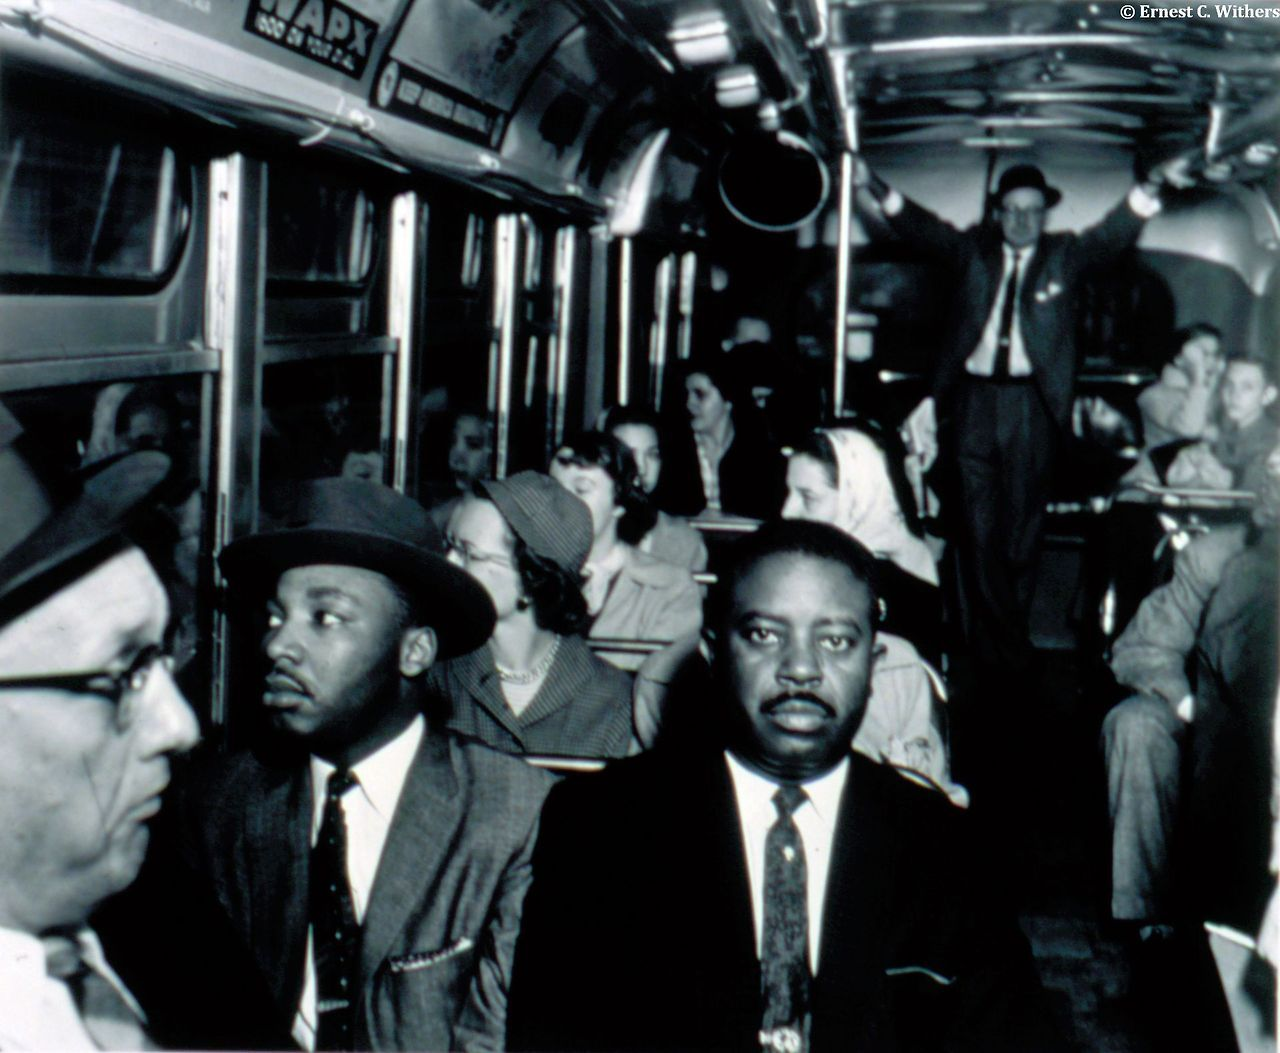 Ernest C. Withers (American, 1922–2007) First Desegregated Bus Ride: Dr. Martin Luther King and Rev. Ralph Abernathy on first desegregated bus, Montgomery, Alabama, December 1956, from the portfolio I am a Man, 1956 Gelatin silver print Oberlin Friends of Art Fund, 2004.6.2